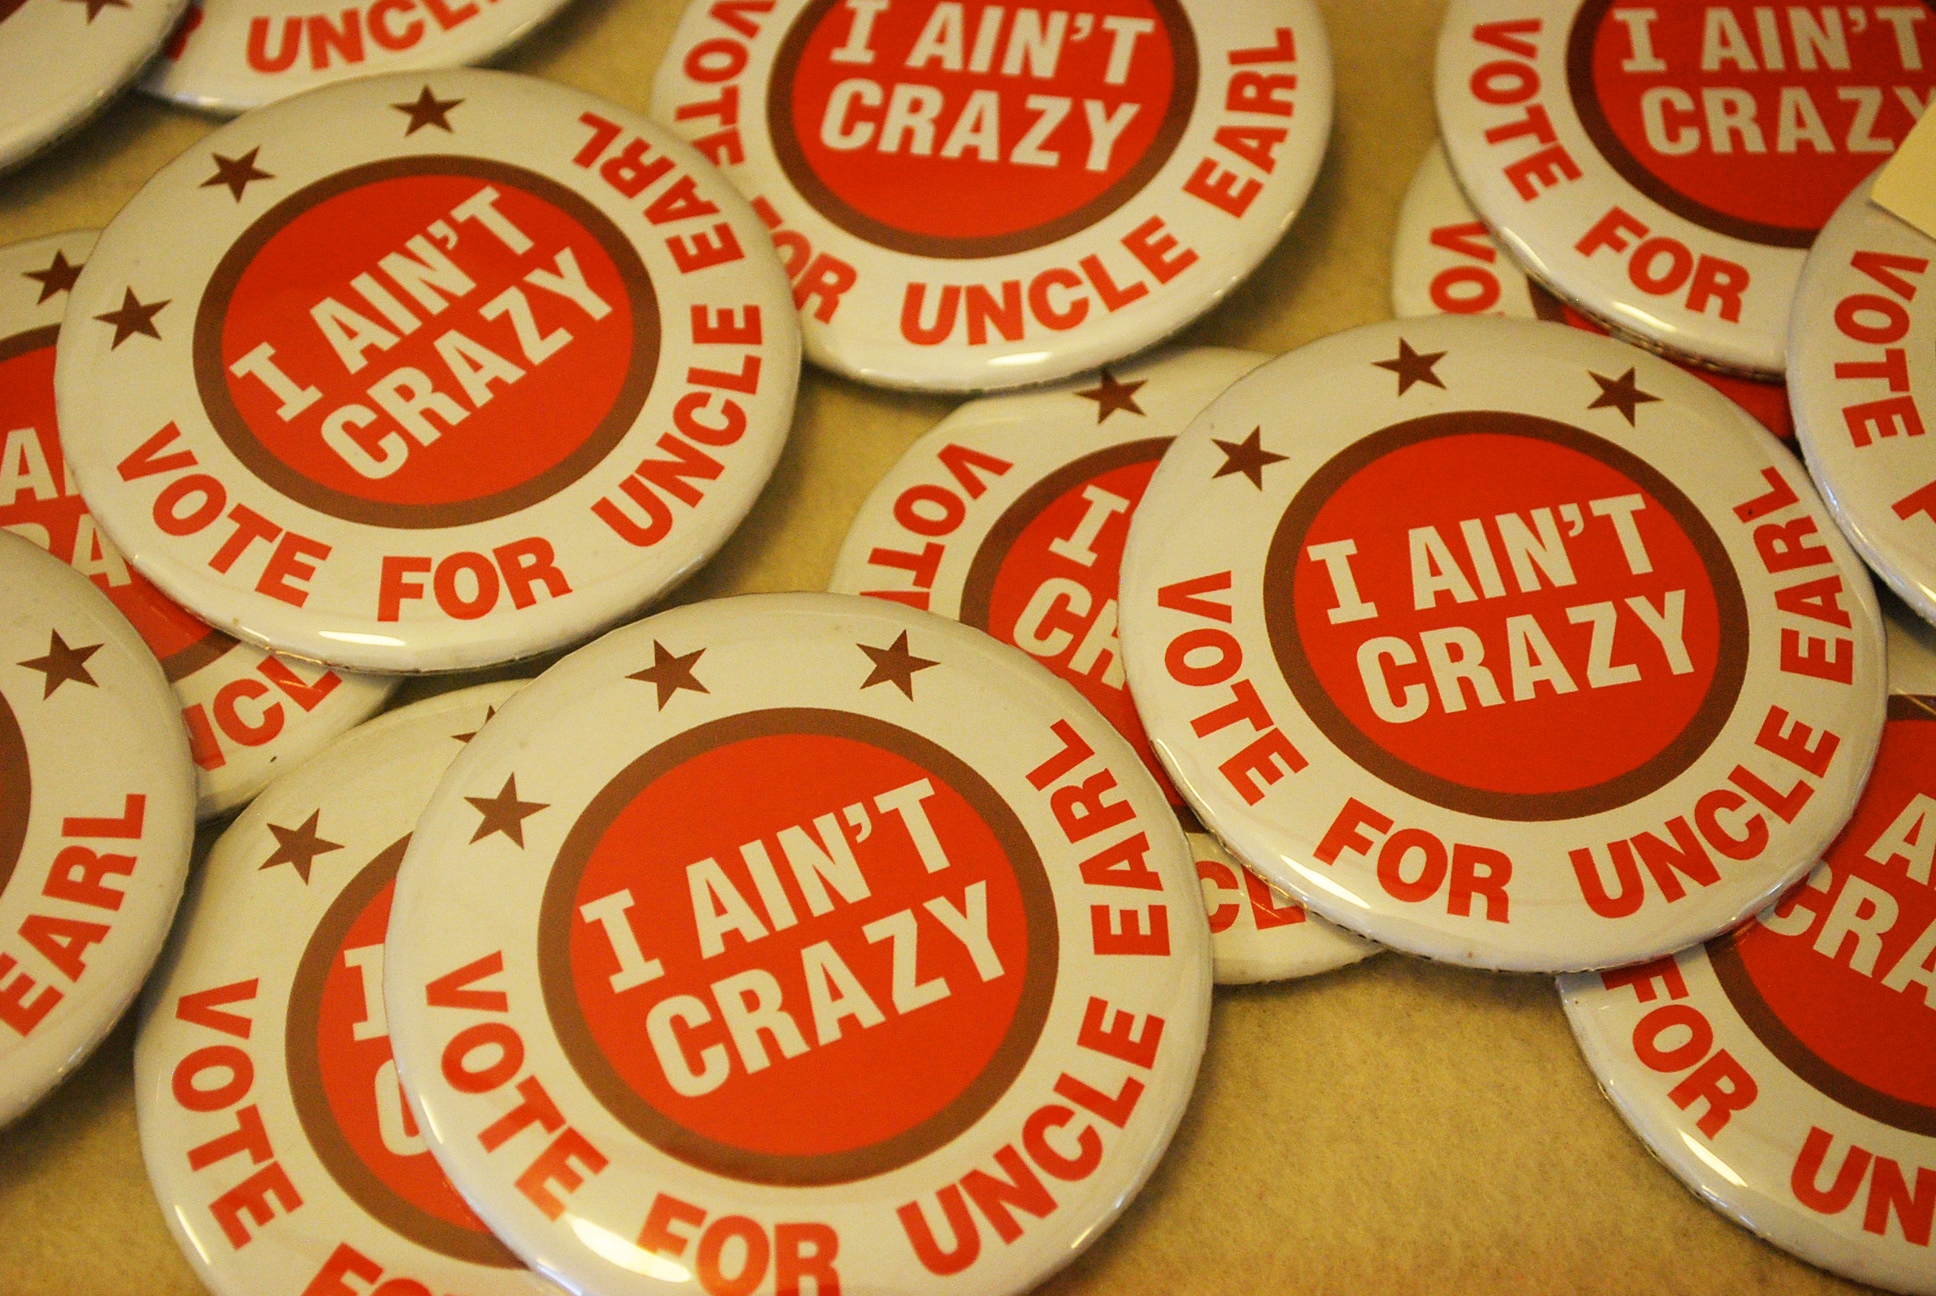 I ain't crazy - vote for Uncle Earl